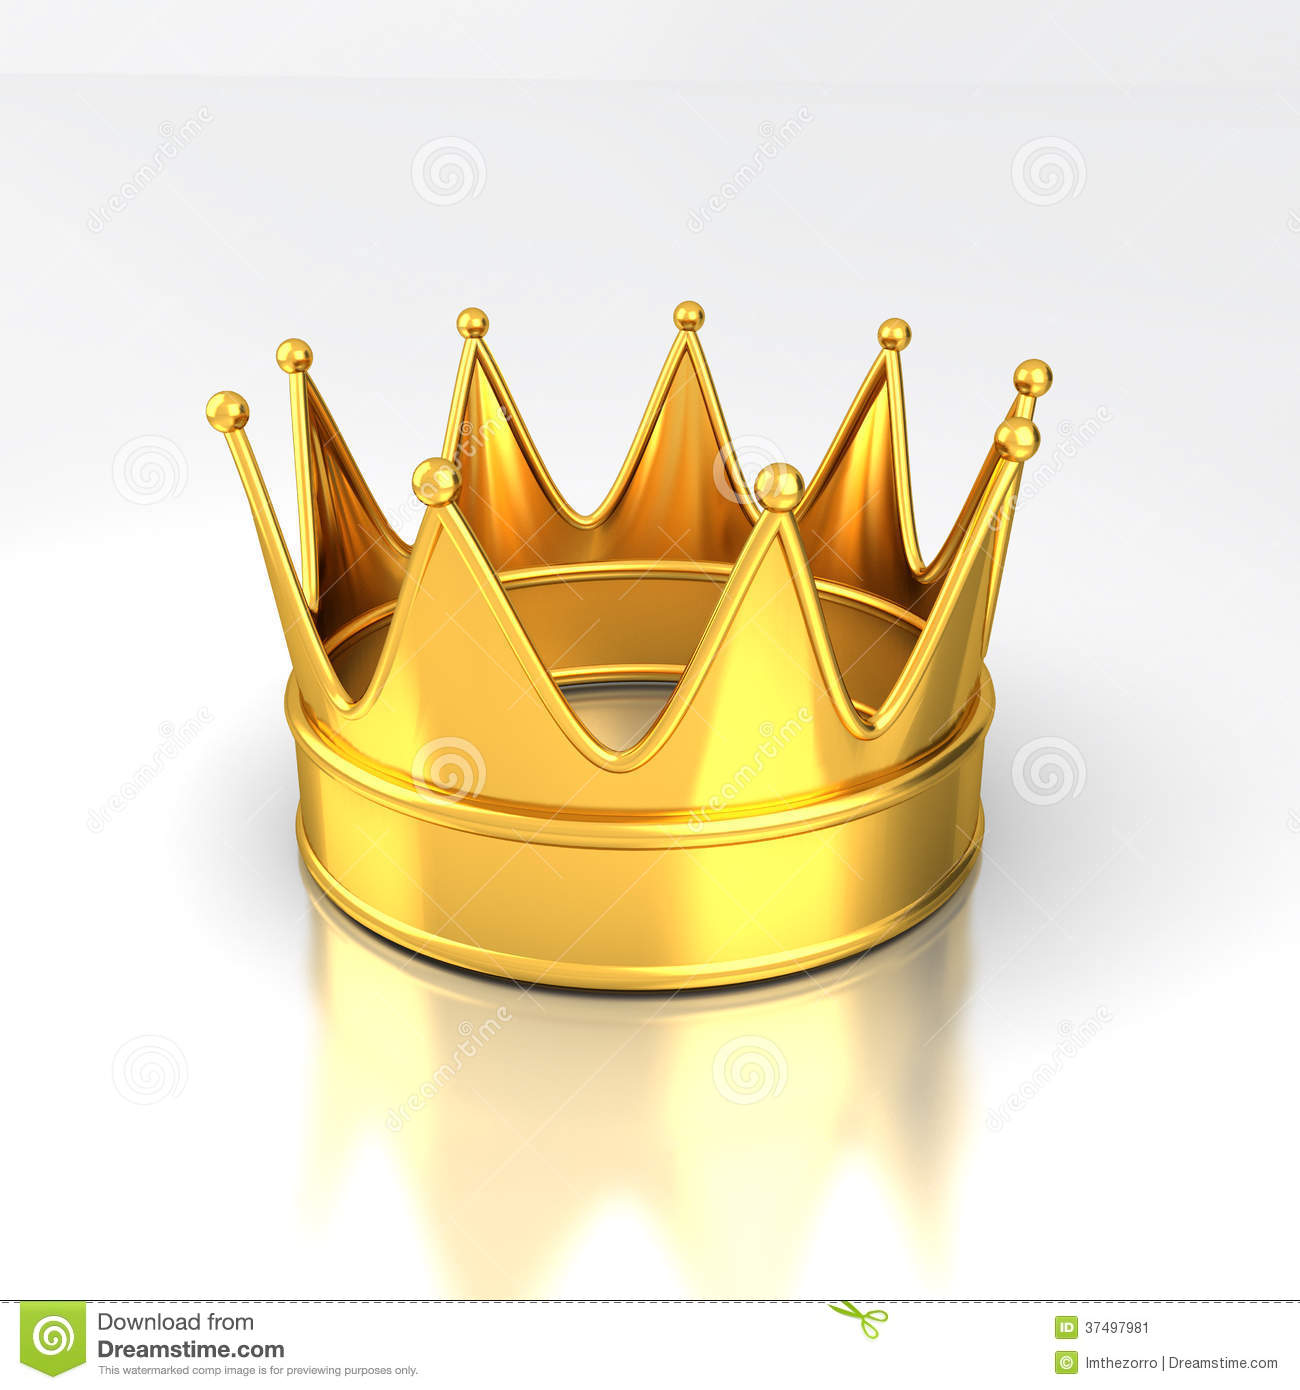 Gold crown background - photo#7